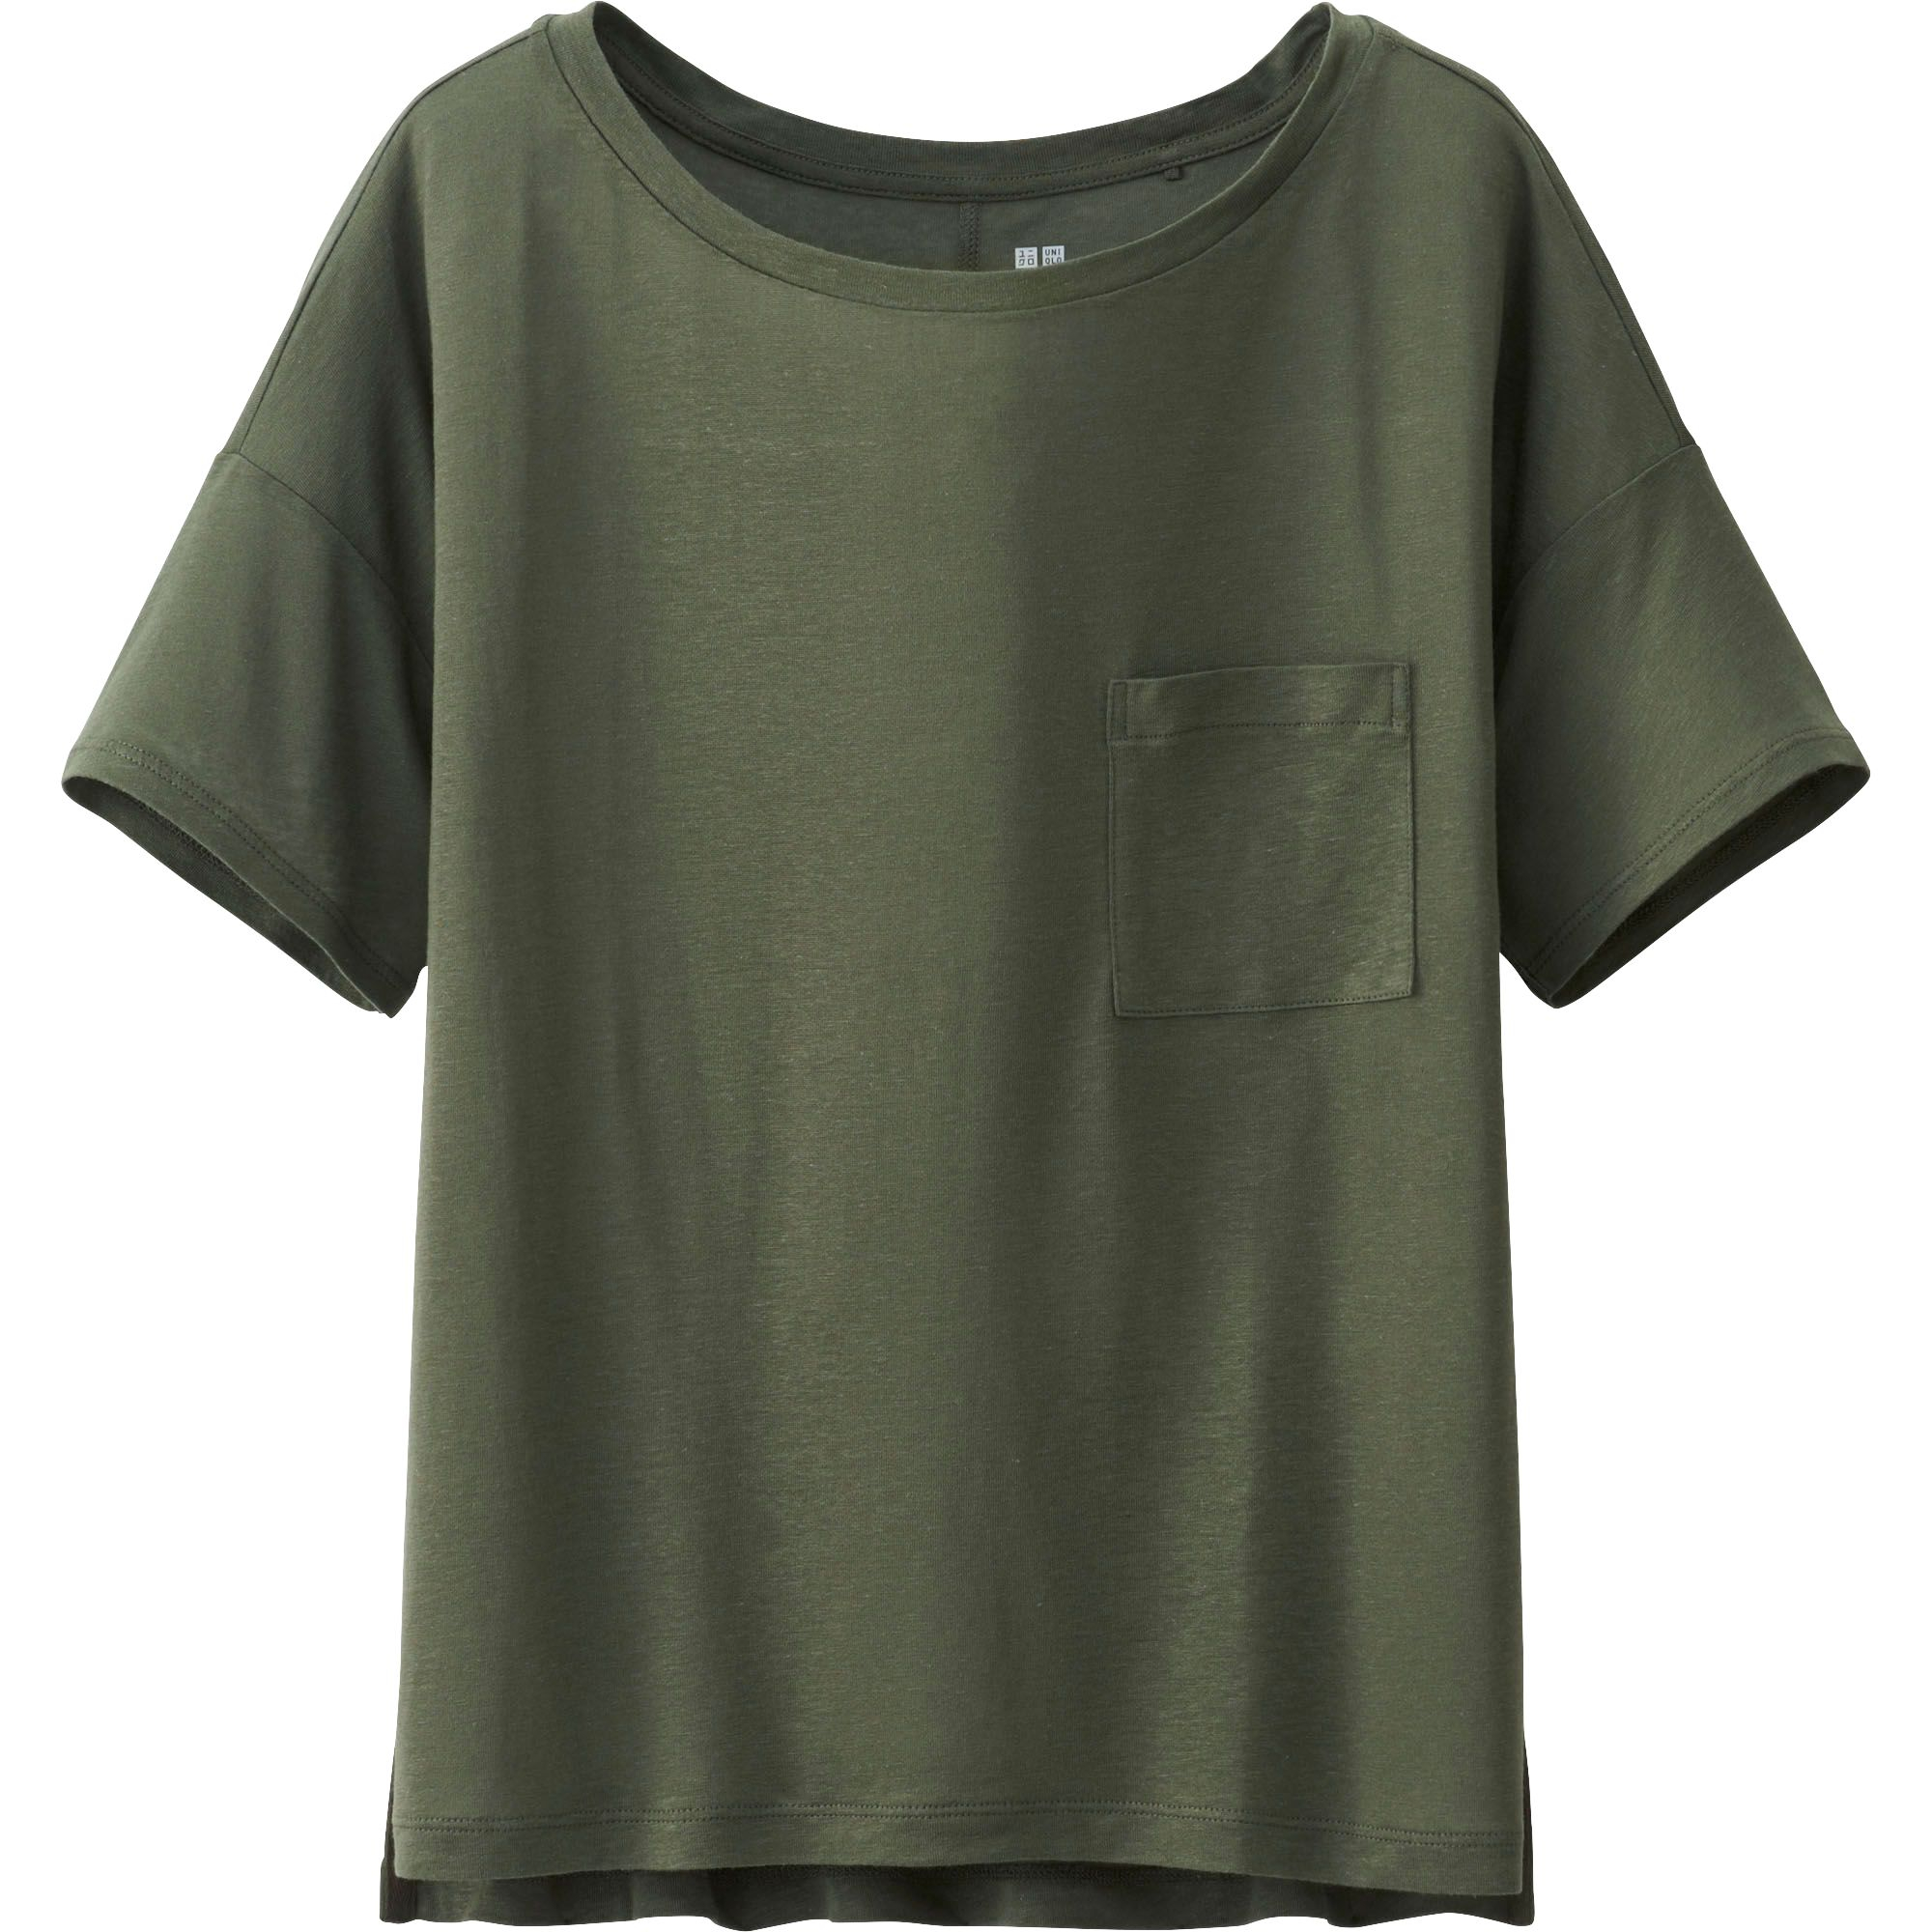 Uniqlo Women Modal Linen Short Sleeve Boxy T Shirt In